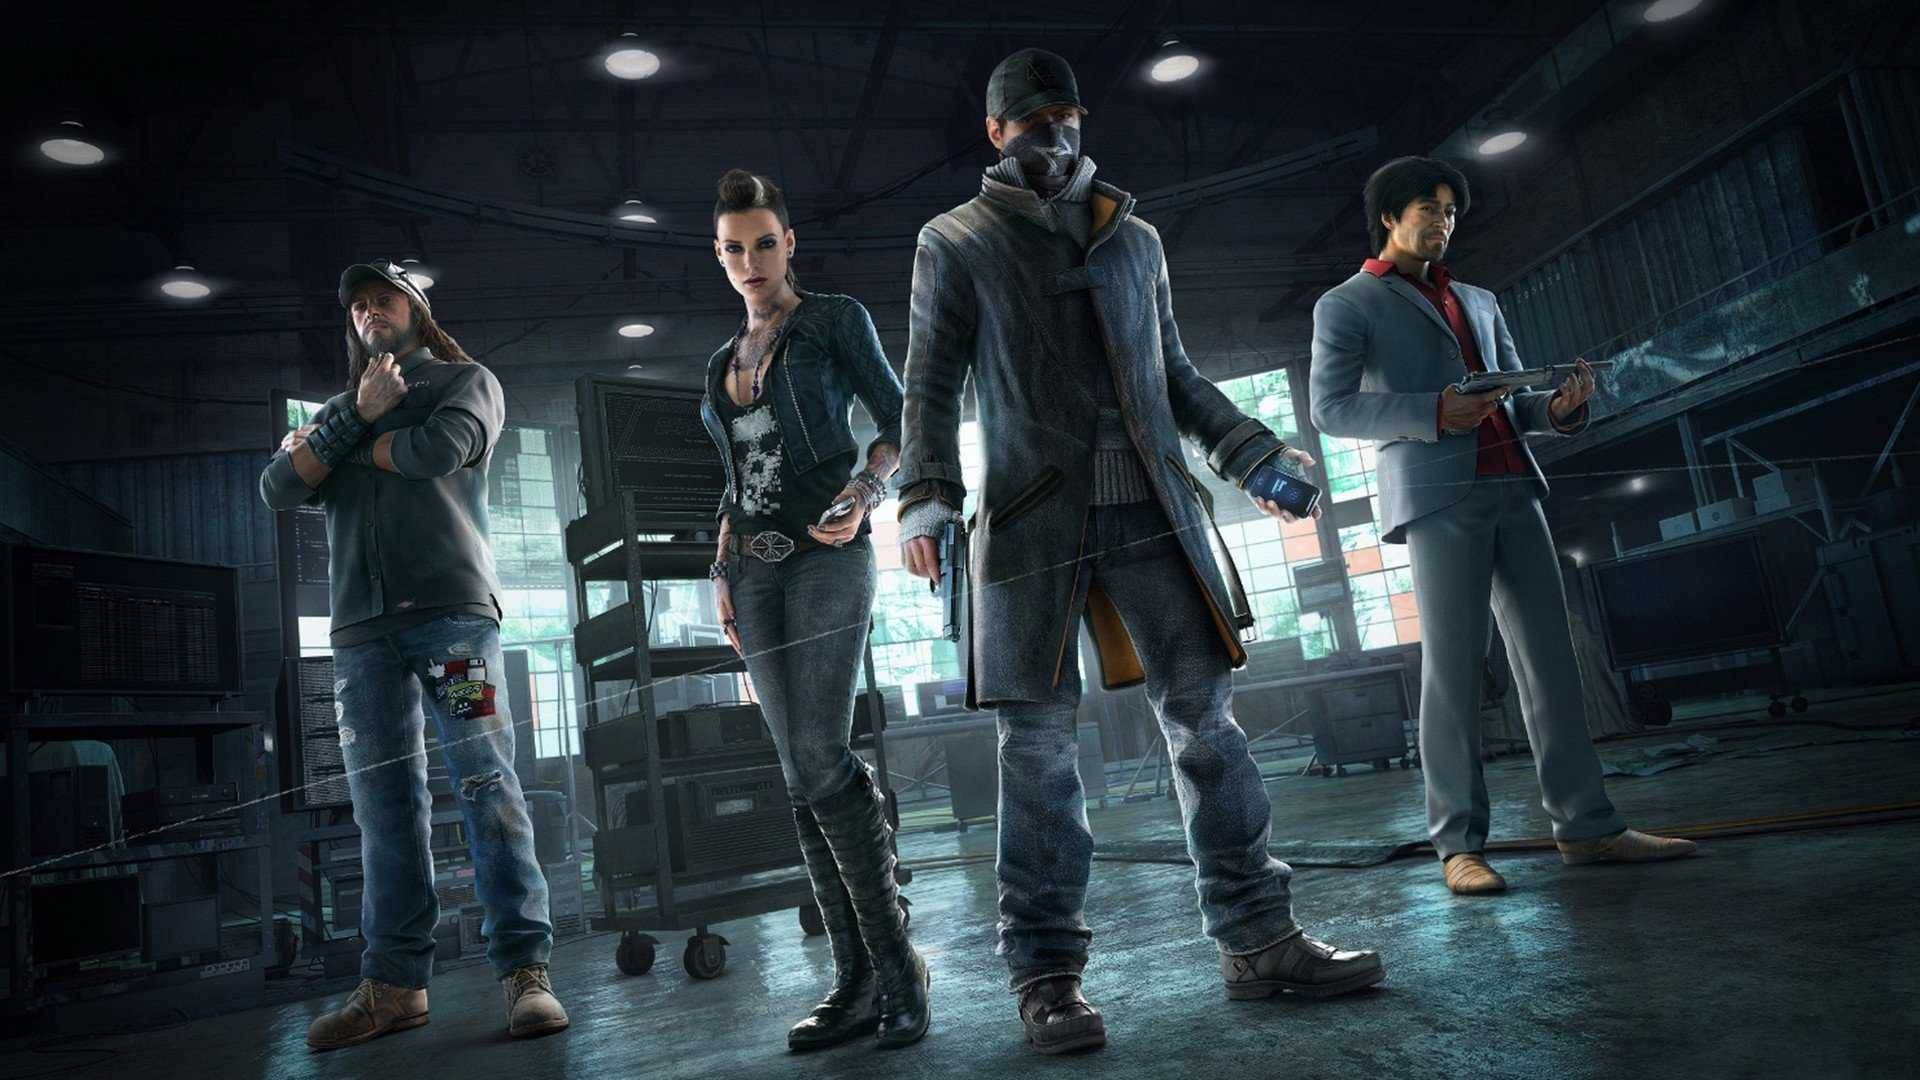 Download Hd 1080p Watch Dogs Pc Background Id 117250 For Free